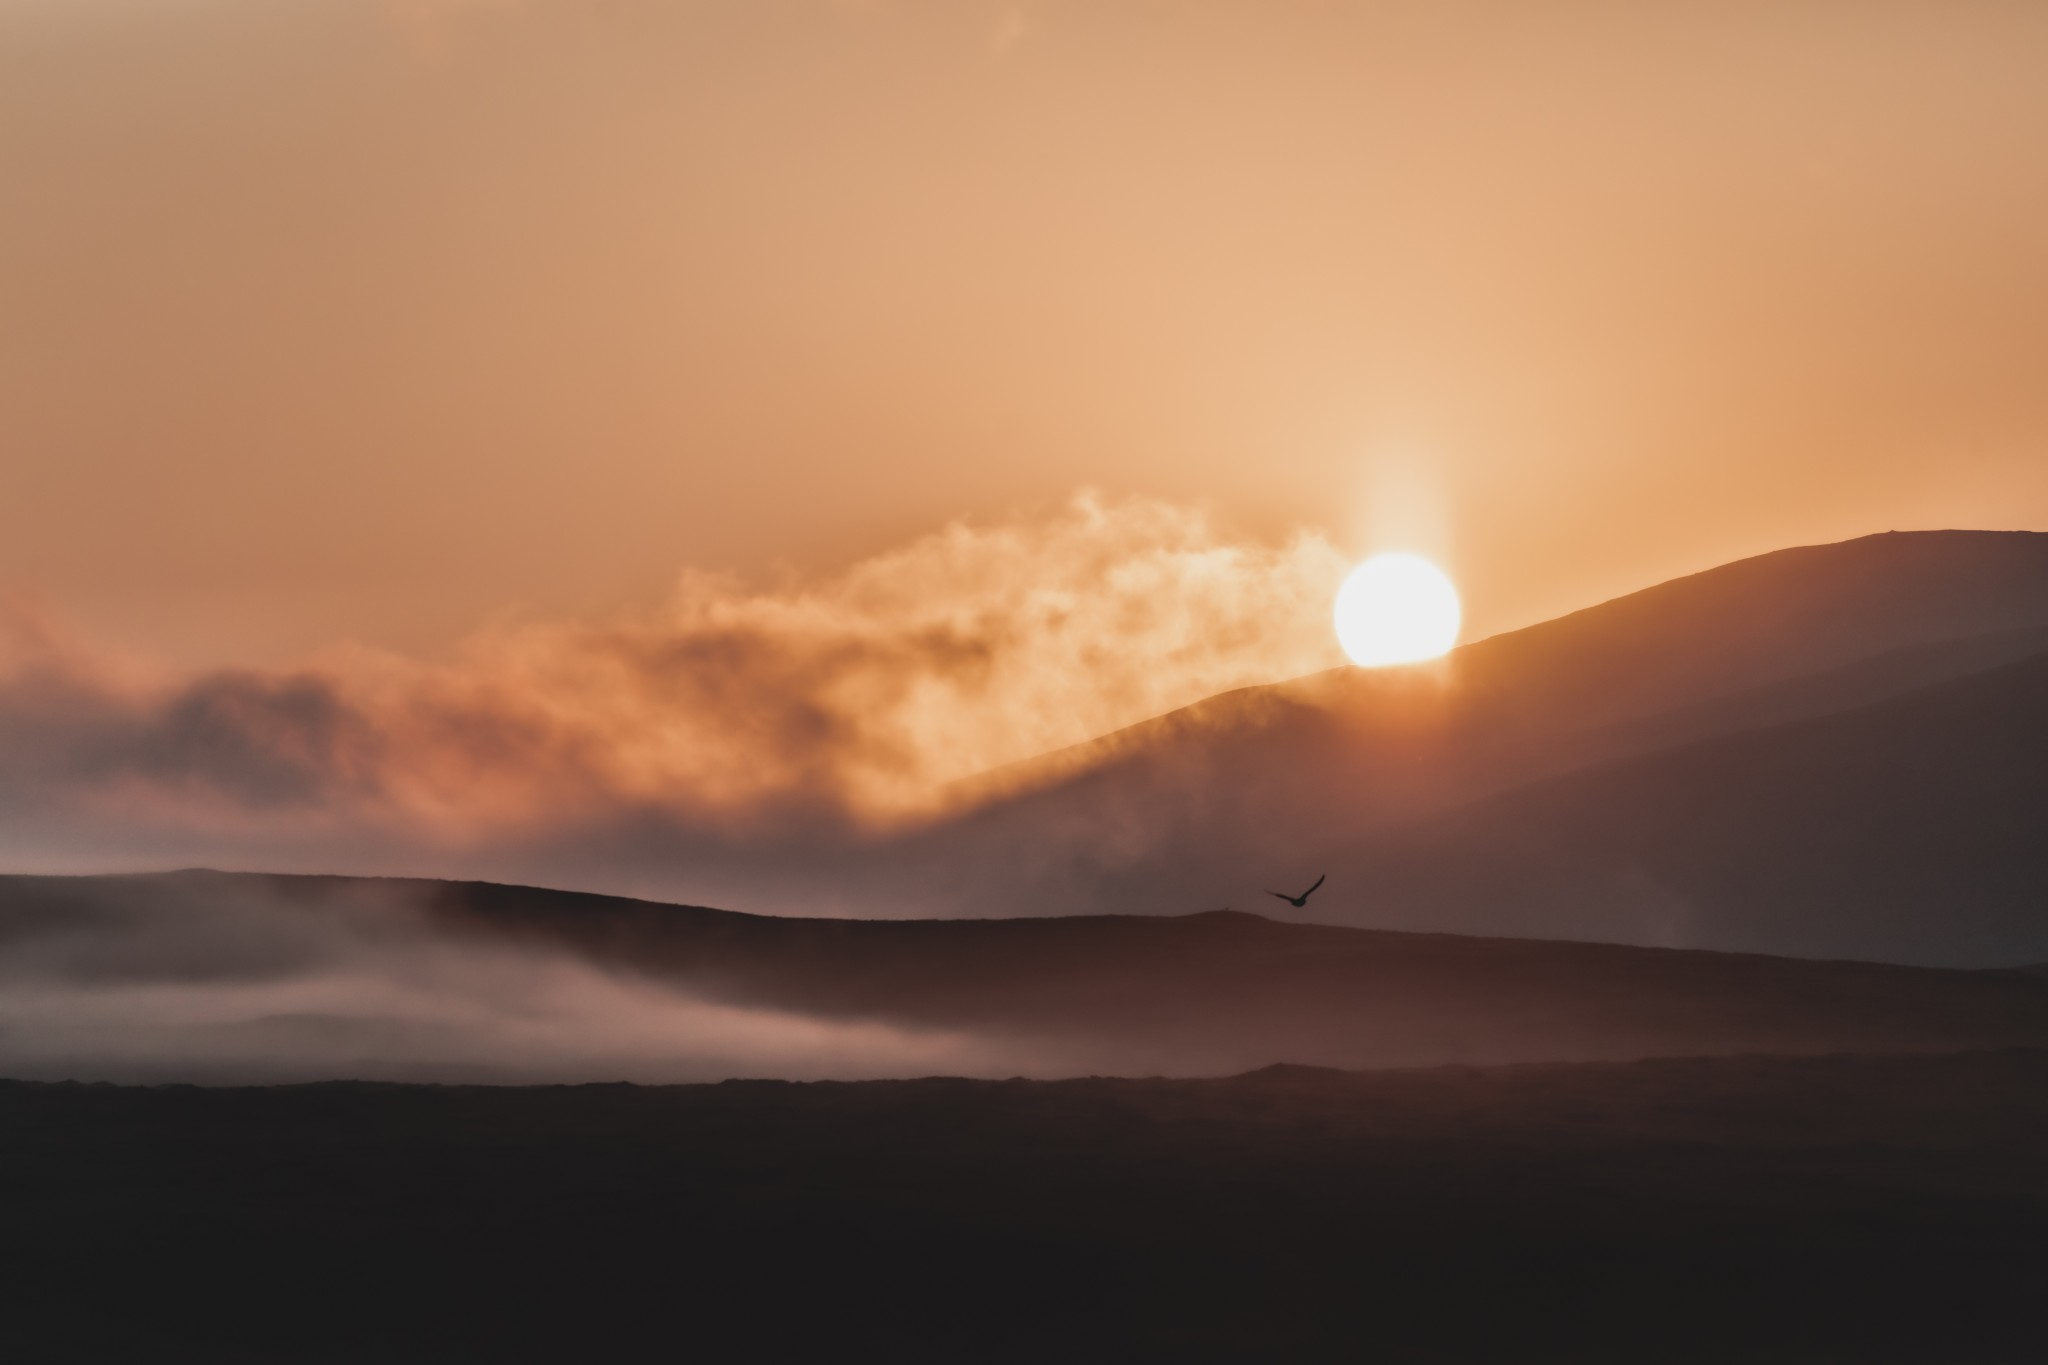 Sunrise over the Hoy hills, Orkney - image by Ally Velzian